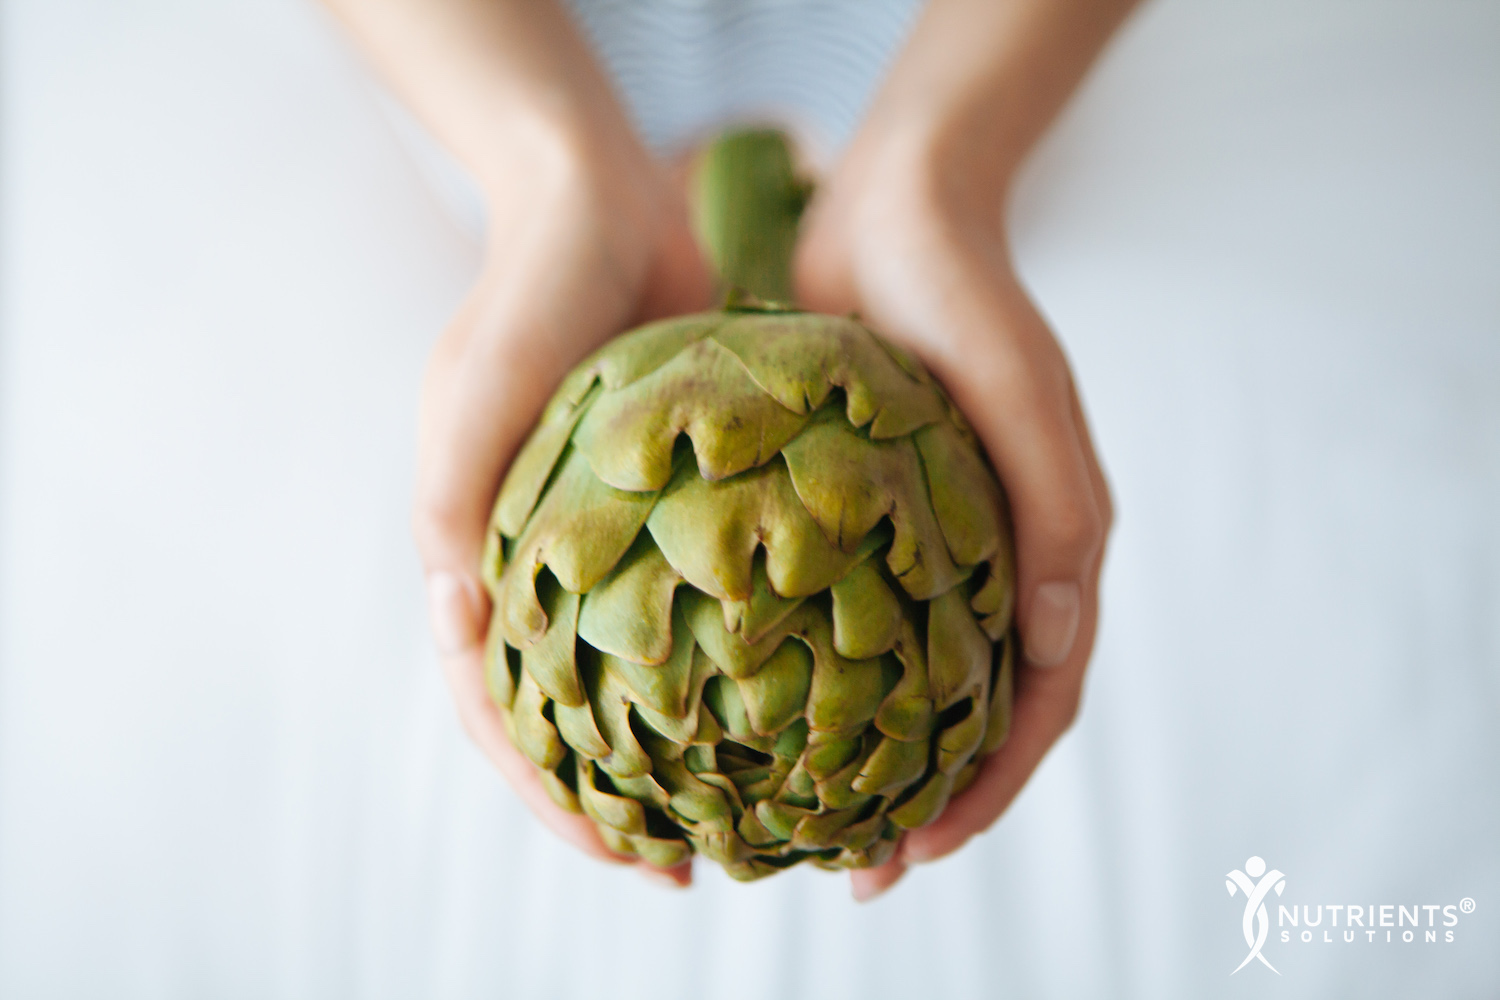 7 Health Benefits of Artichokes and Artichoke Leaf Extract